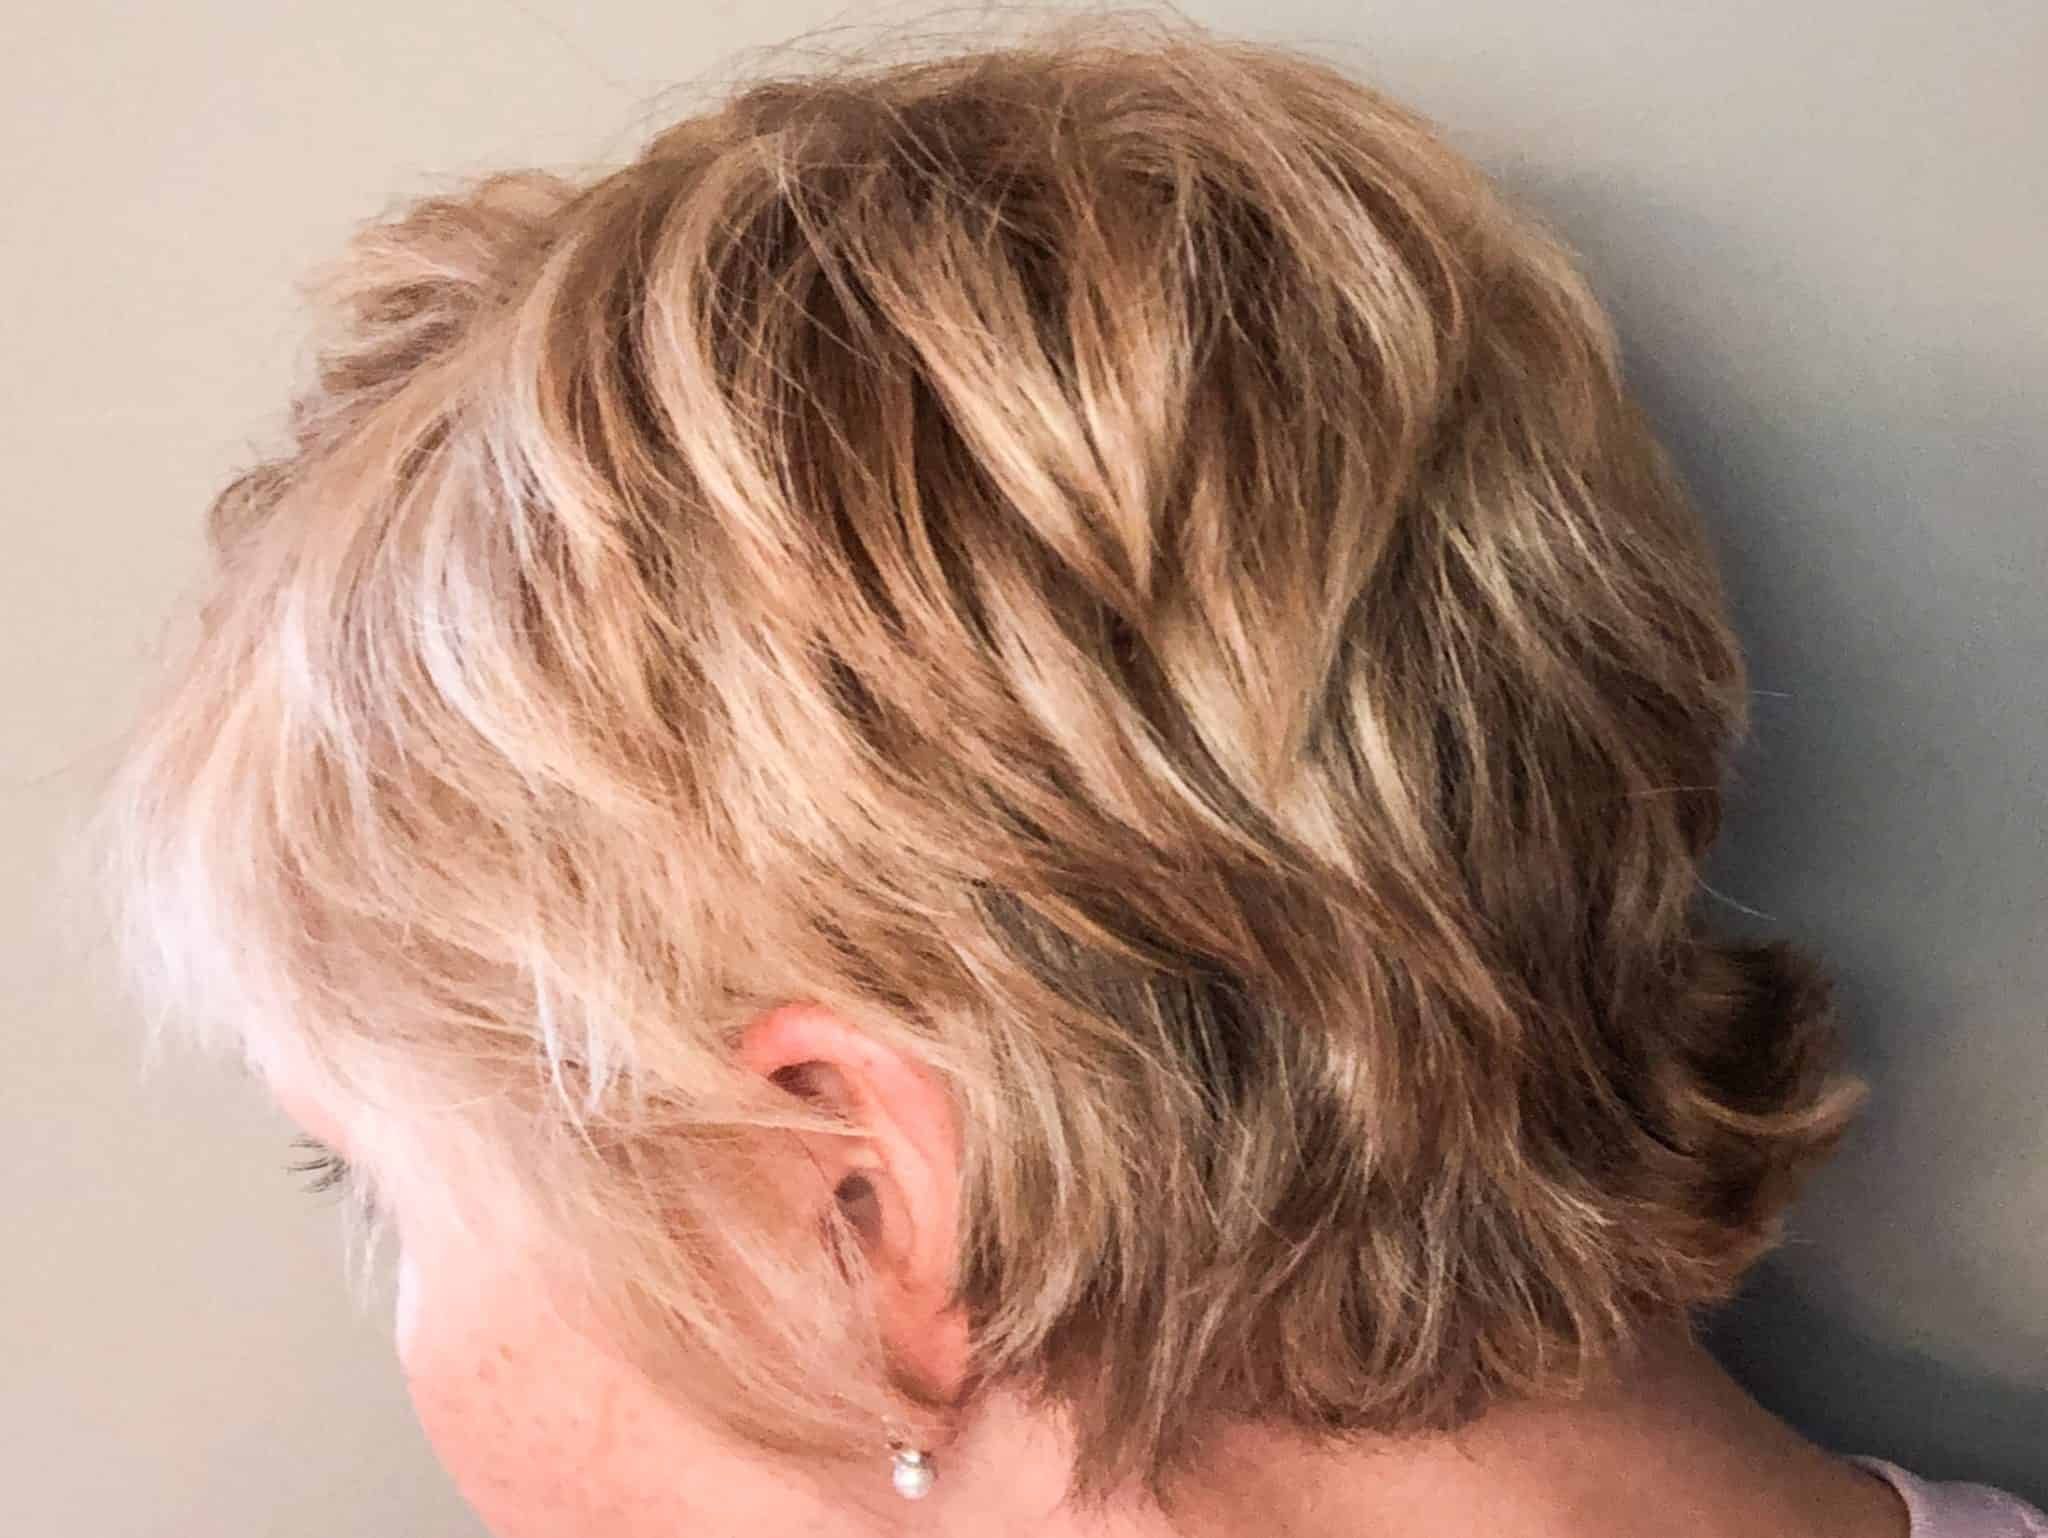 Hair Growth After Chemo Pictures And Monthly Timeline Mom S Plan It Vacation Blog